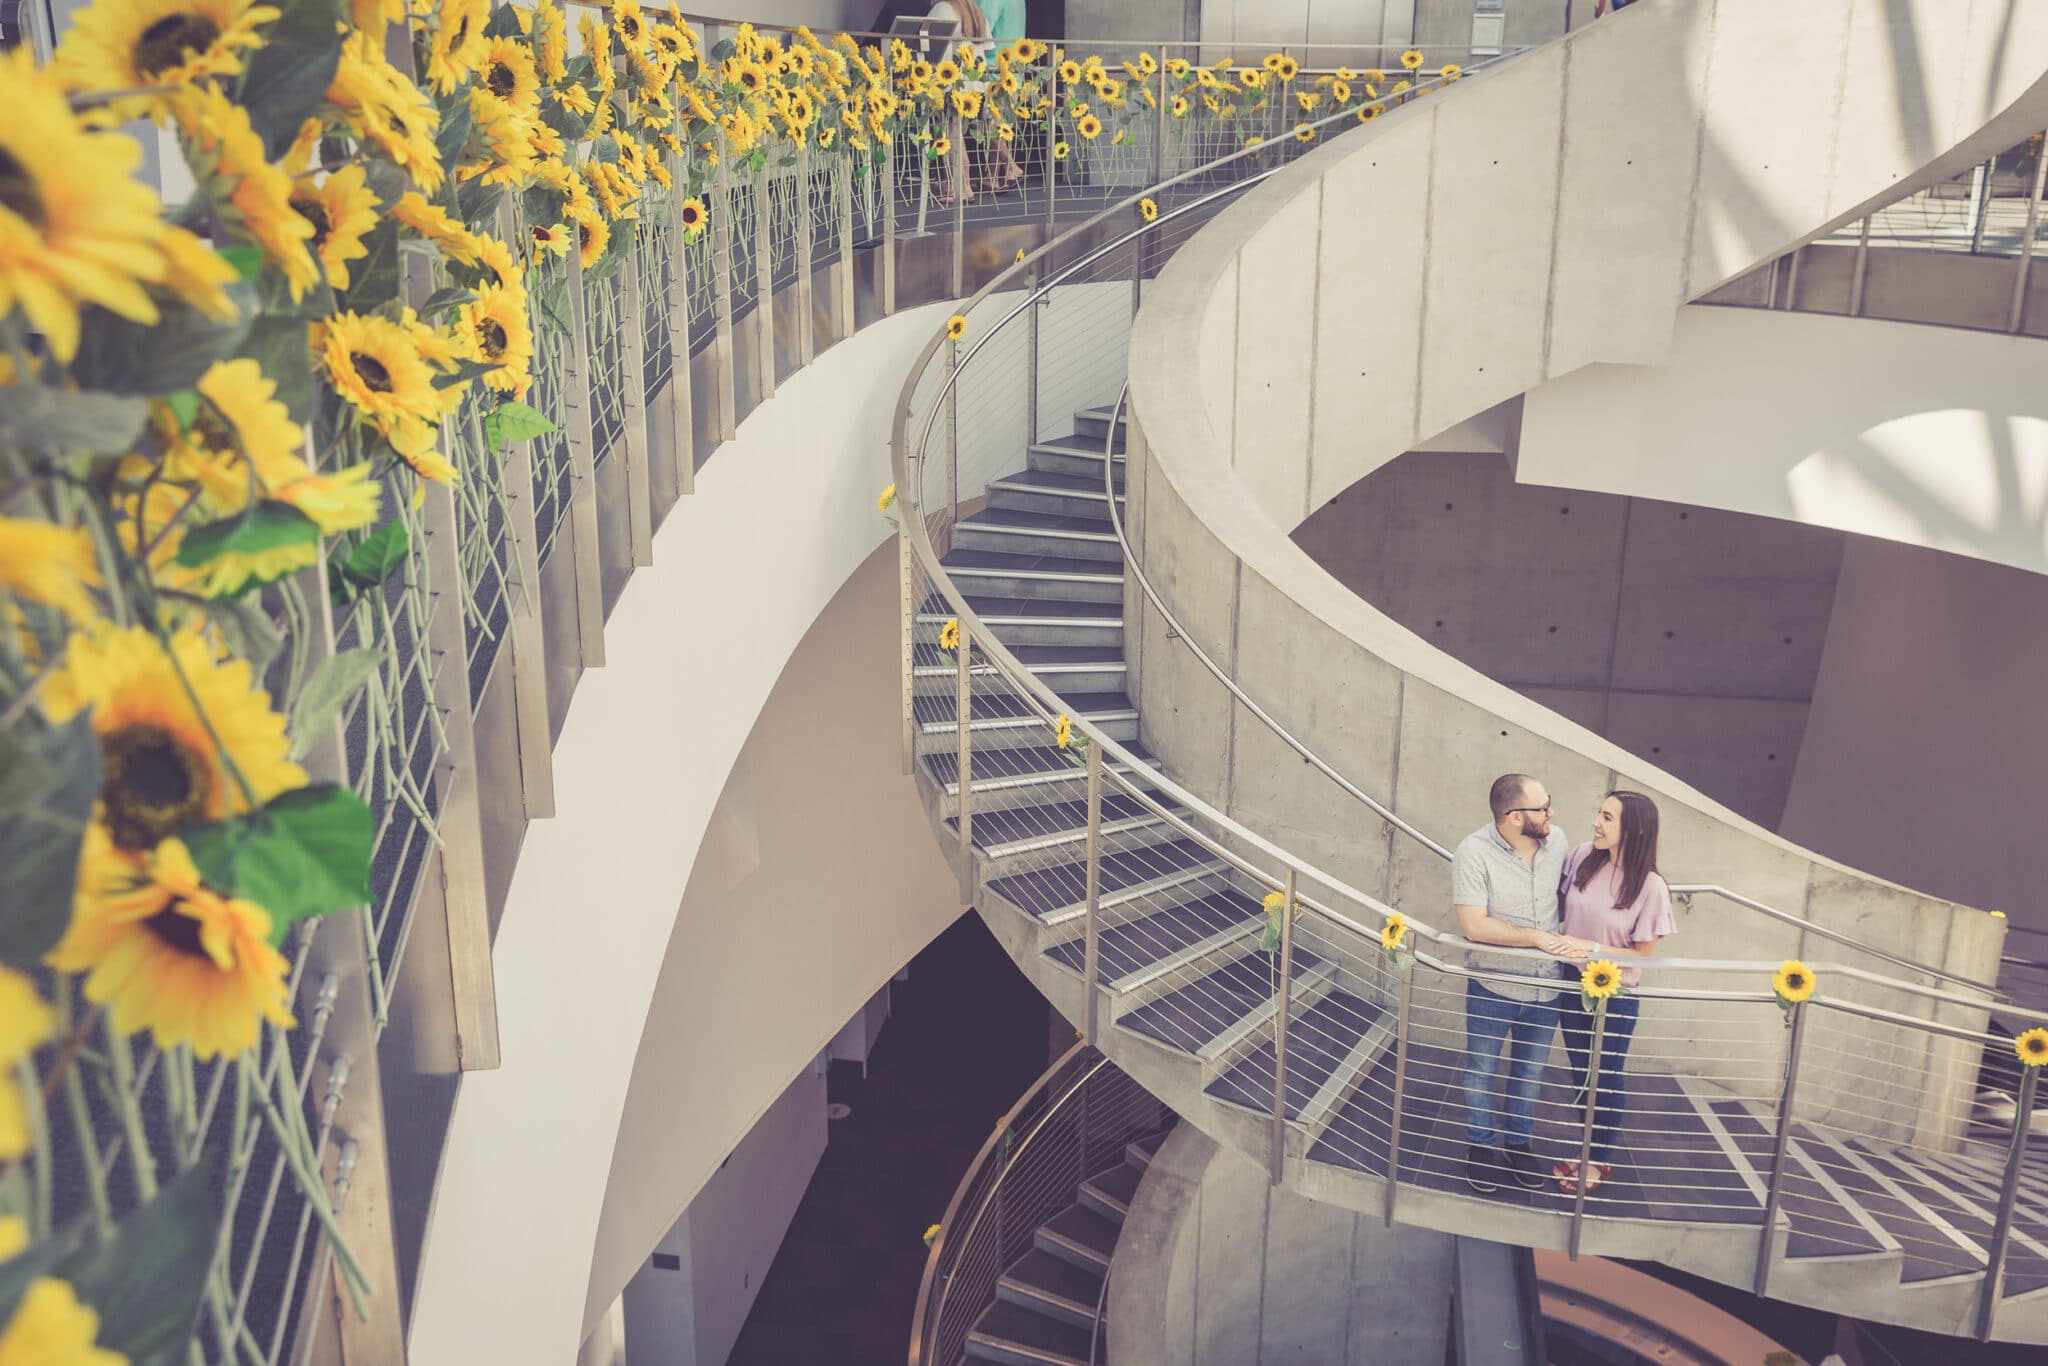 bride and groom to be looking at each other and smiling on the spiral stair case decorated with sunflowers